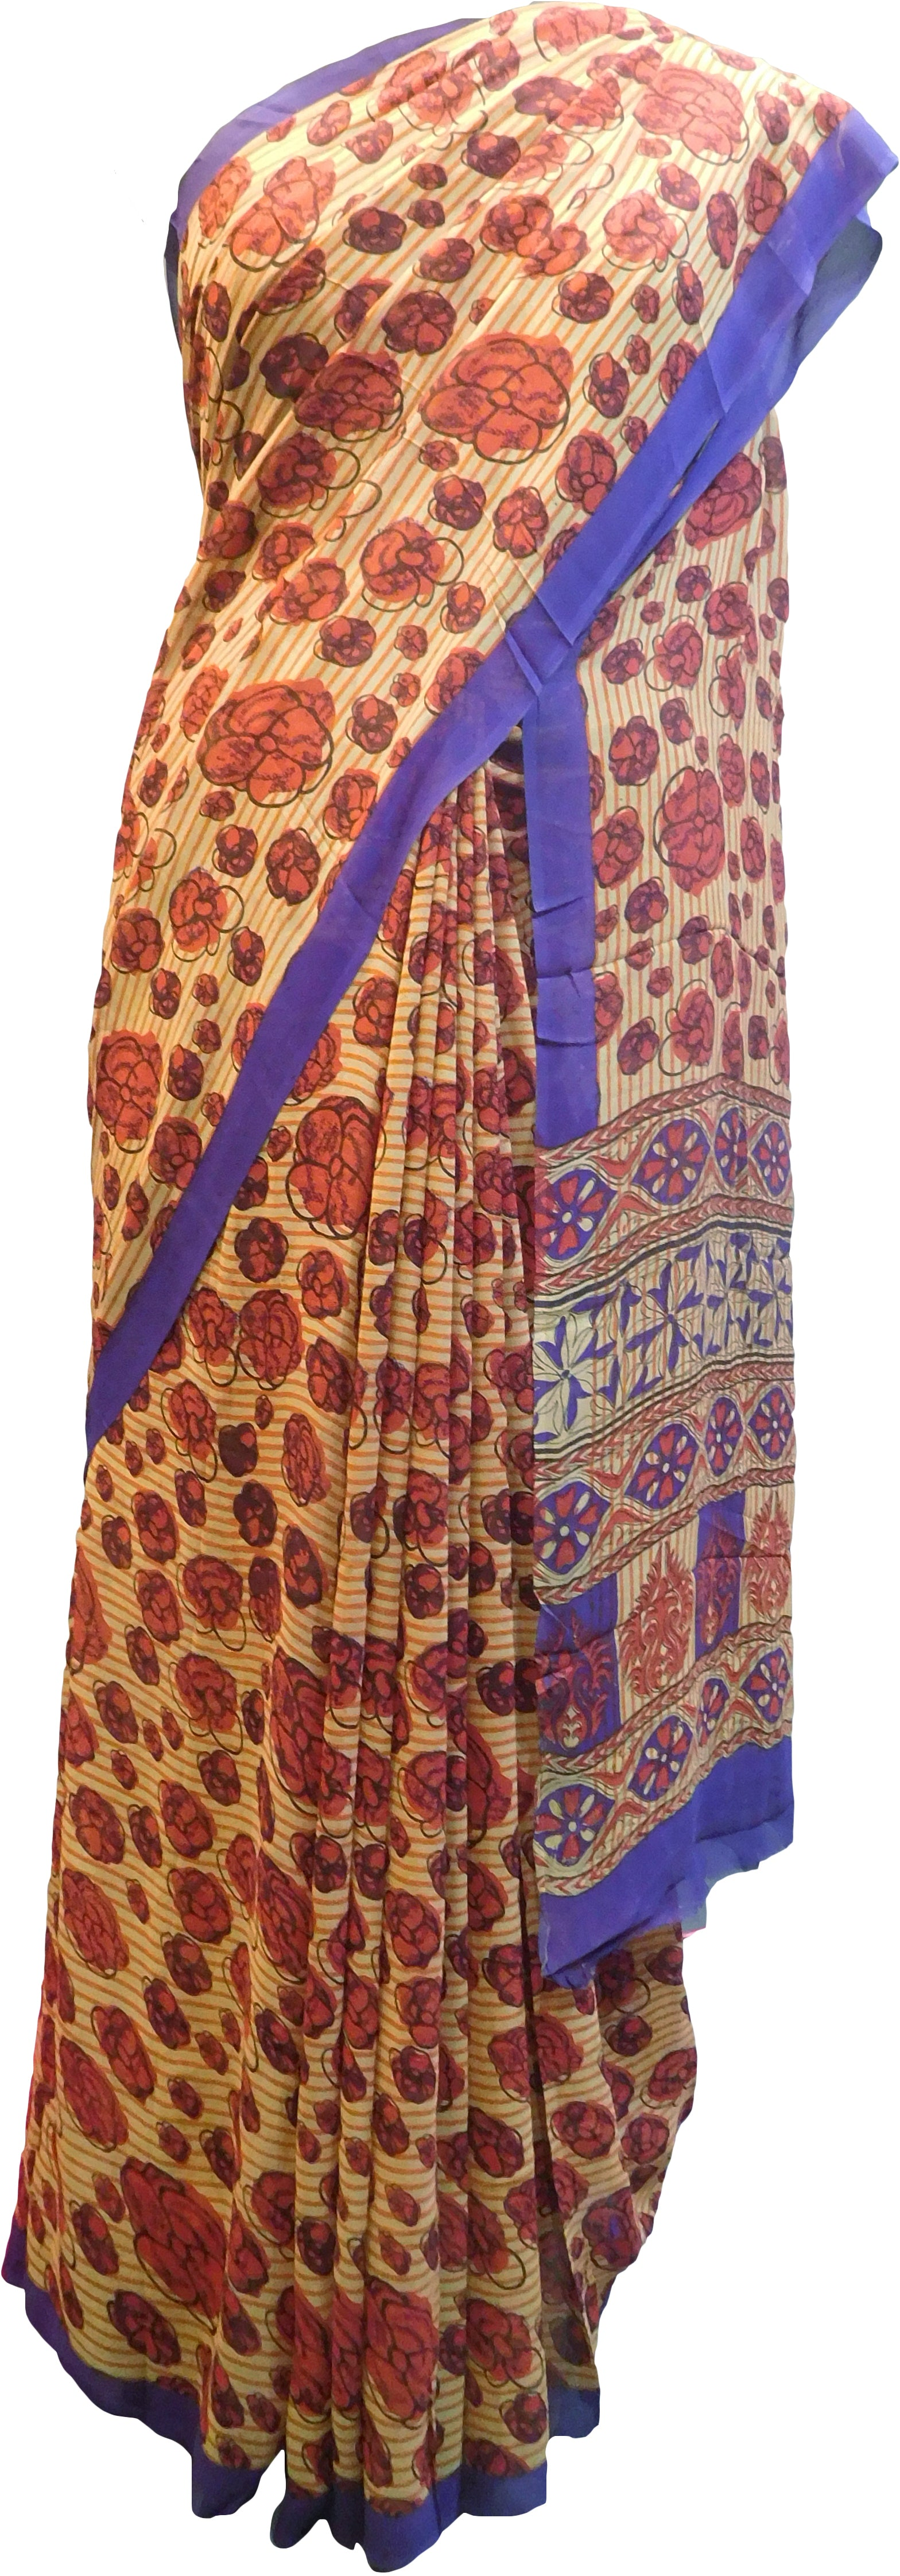 Multicolor Designer Wedding Partywear Pure Crepe Hand Brush Reprinted Kolkata Saree Sari With Blouse Piece  RP277